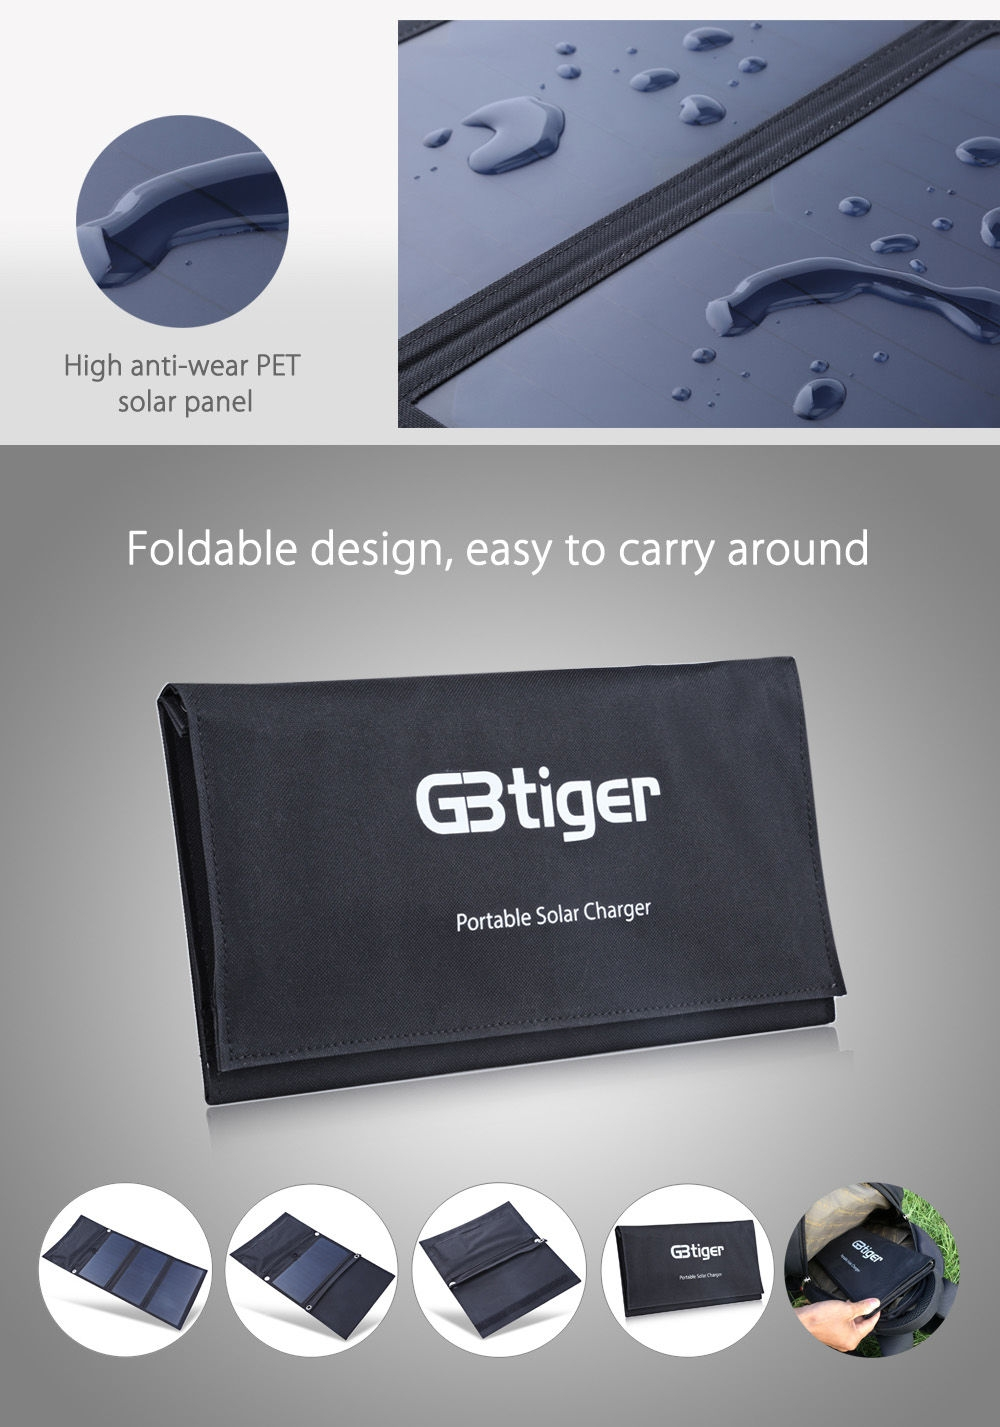 GBtiger 21W Dual USB Portable Sunpower Solar Charger Panel Power Emergency Water Resistant Folding Bag